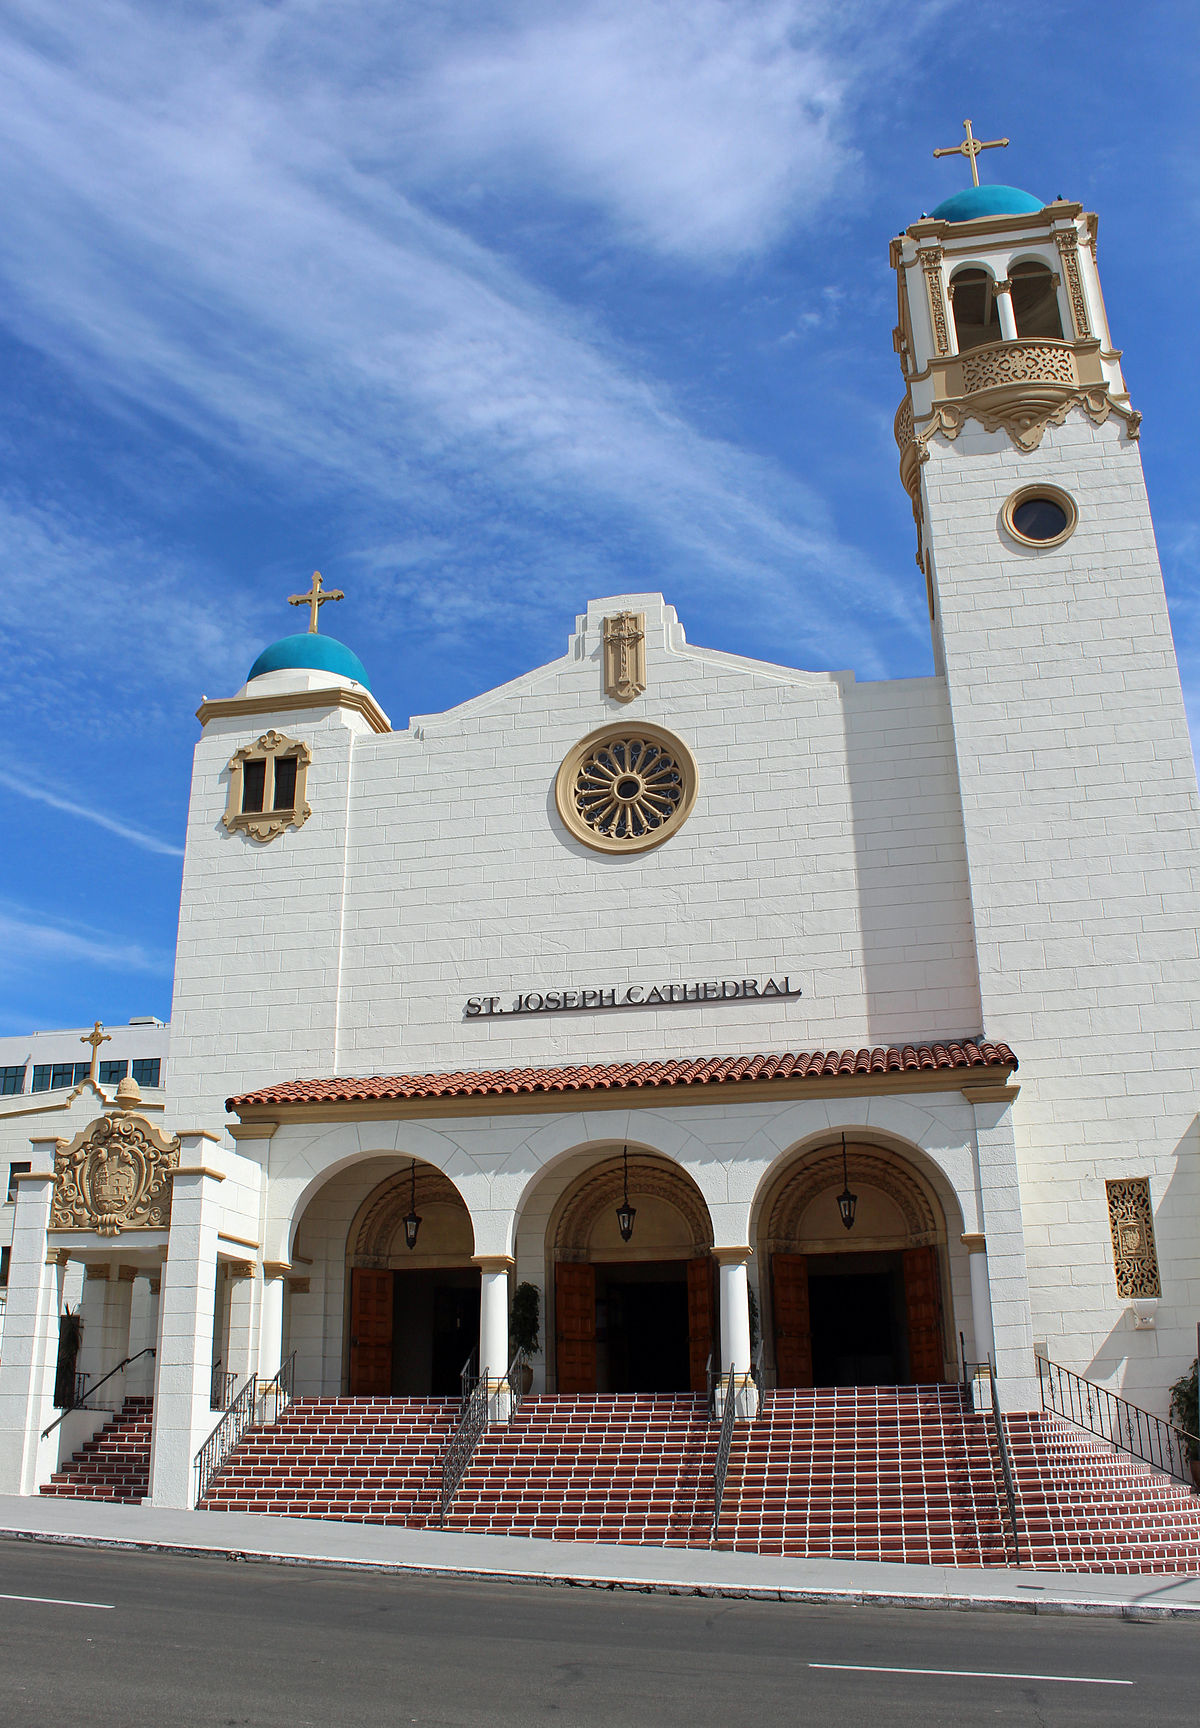 facts and information about the saint joseph cathedral